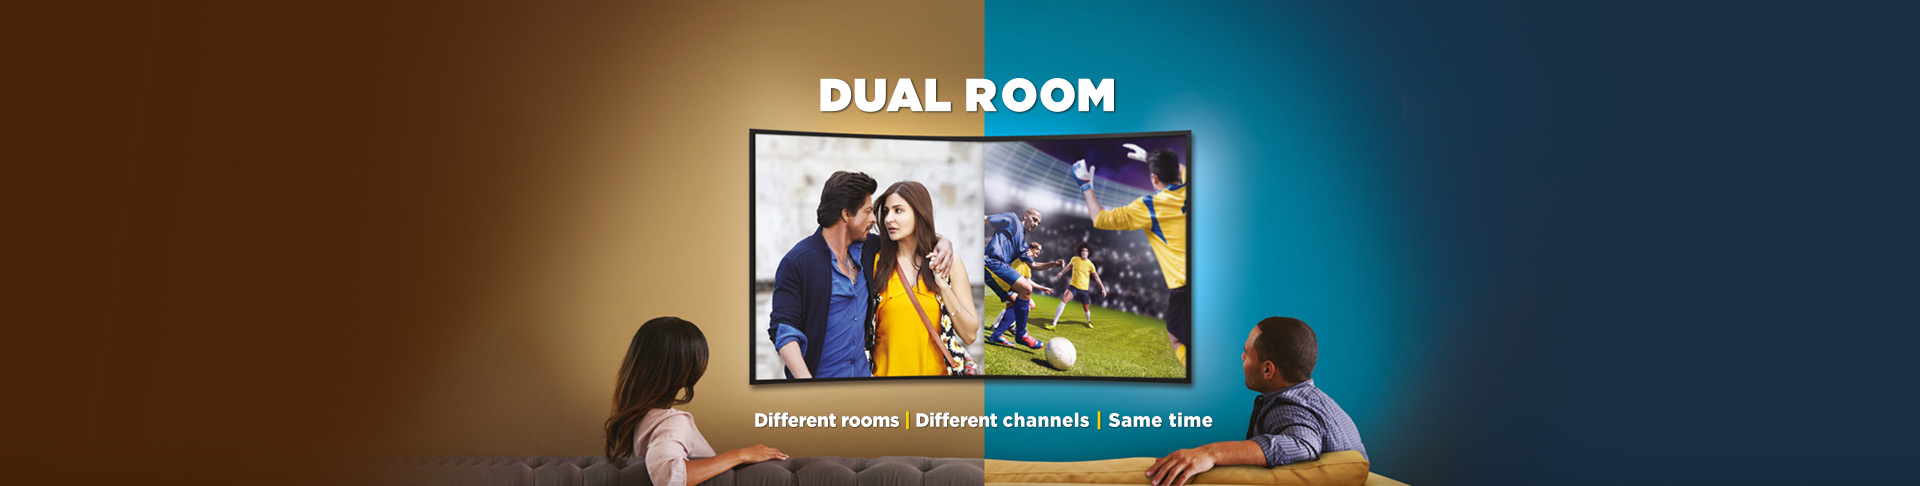 Dual Room Banner